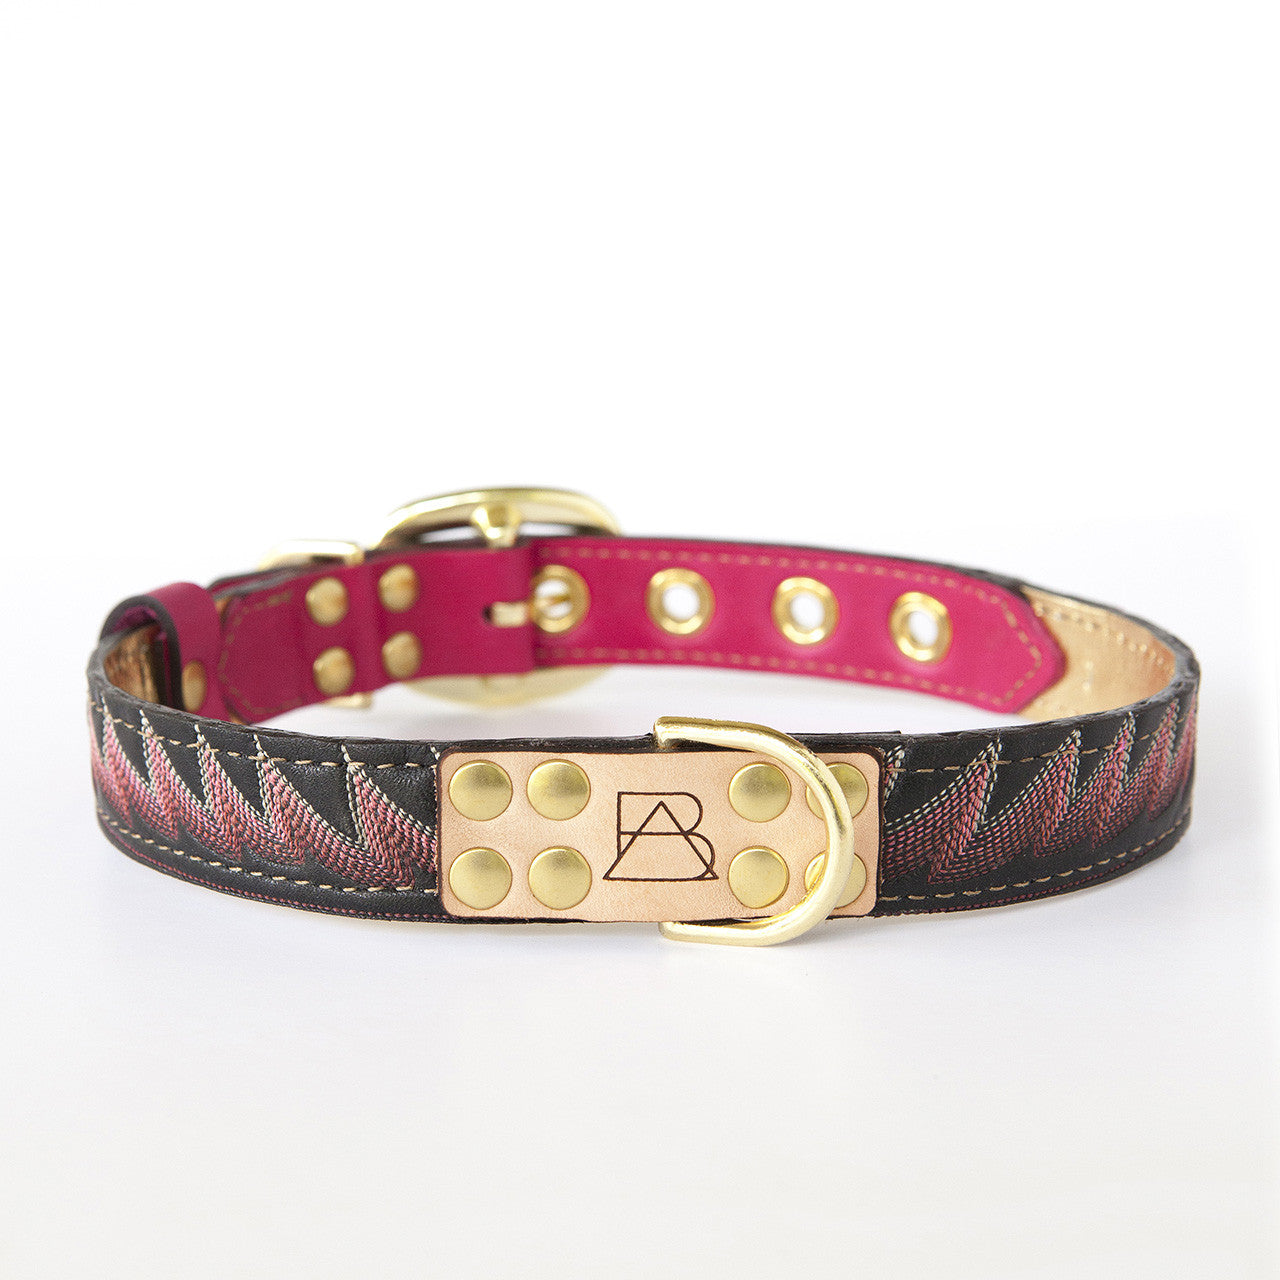 Hot Pink Dog Collar with Black Leather + Bright Pink Stitching (front view)